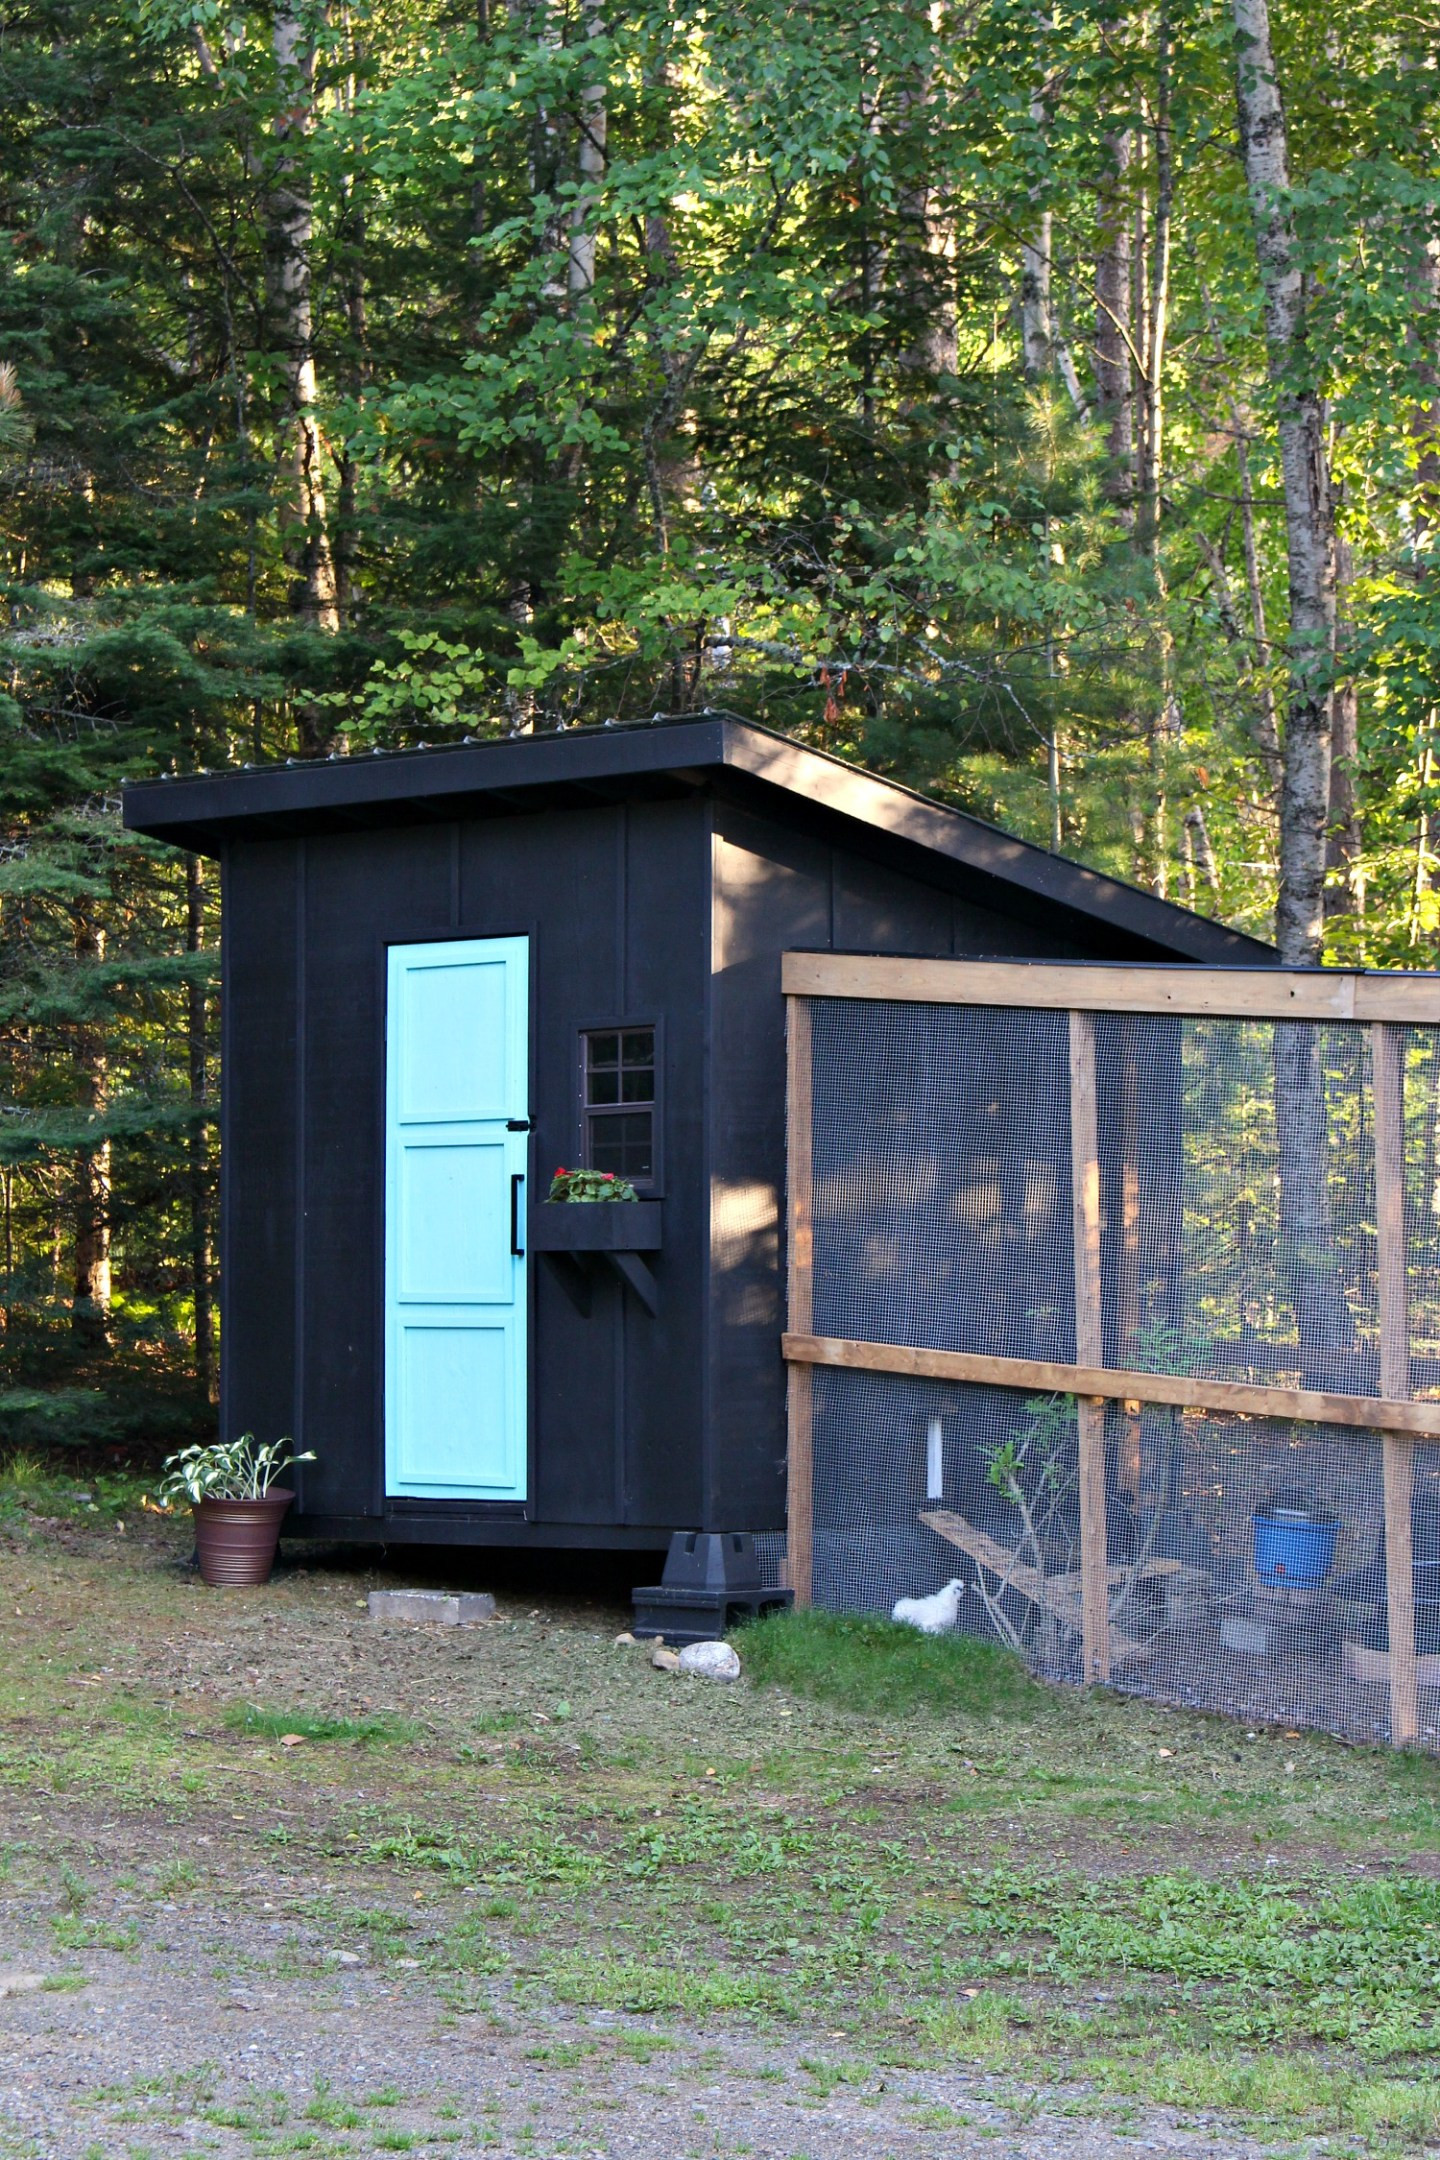 Modern Chicken Coop Design - See the Step by Step Build Tutorial